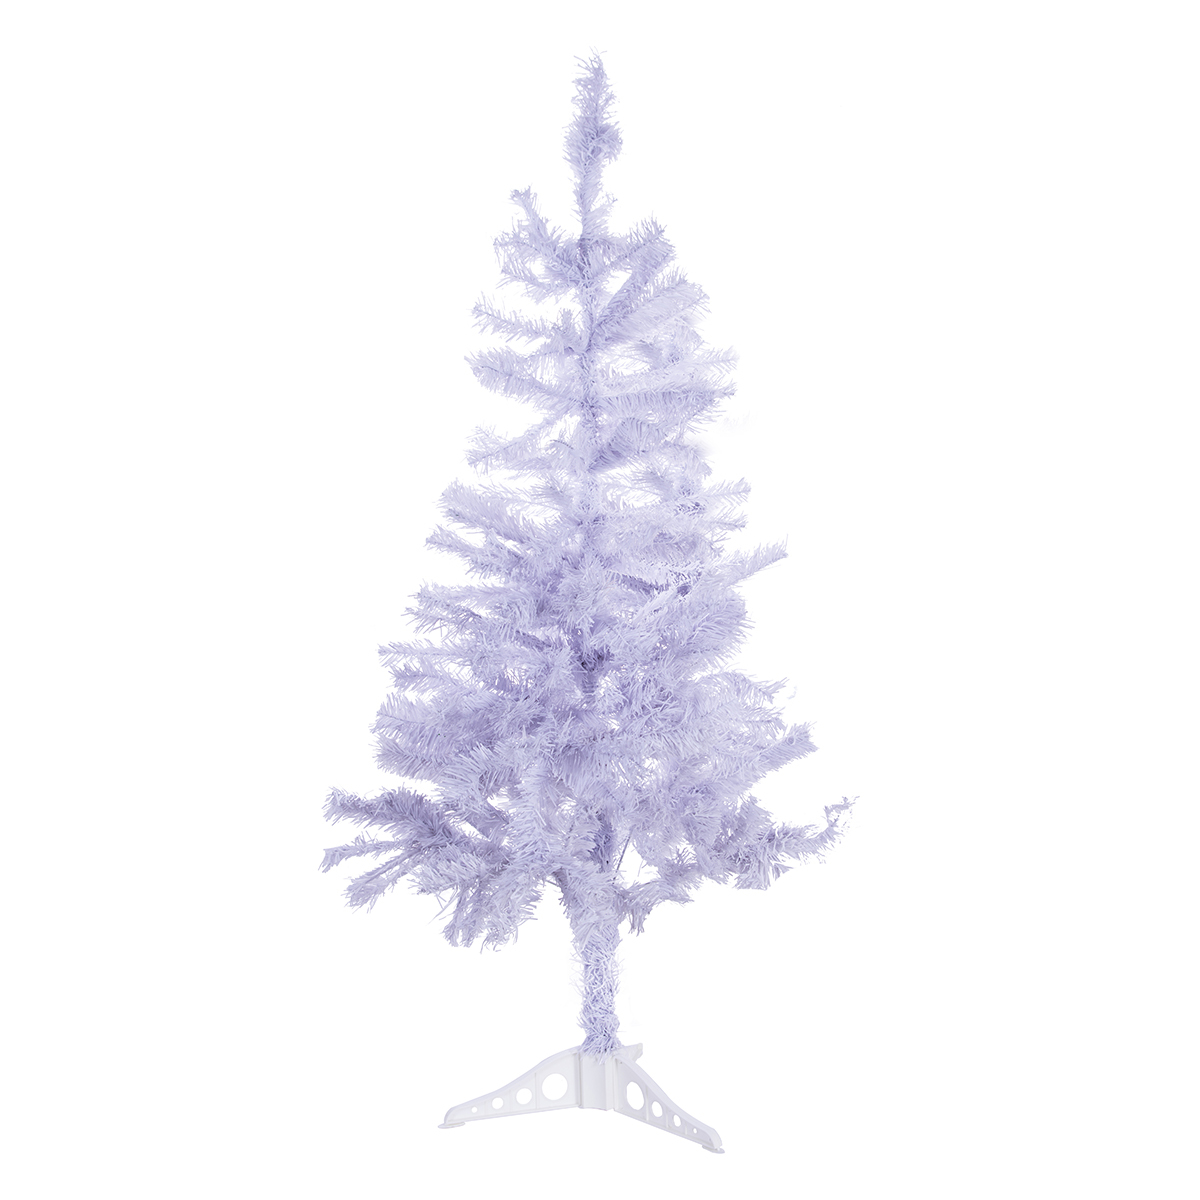 2 Ft White Christmas Tree: Wholesale 2 Ft PVC Christmas Tree